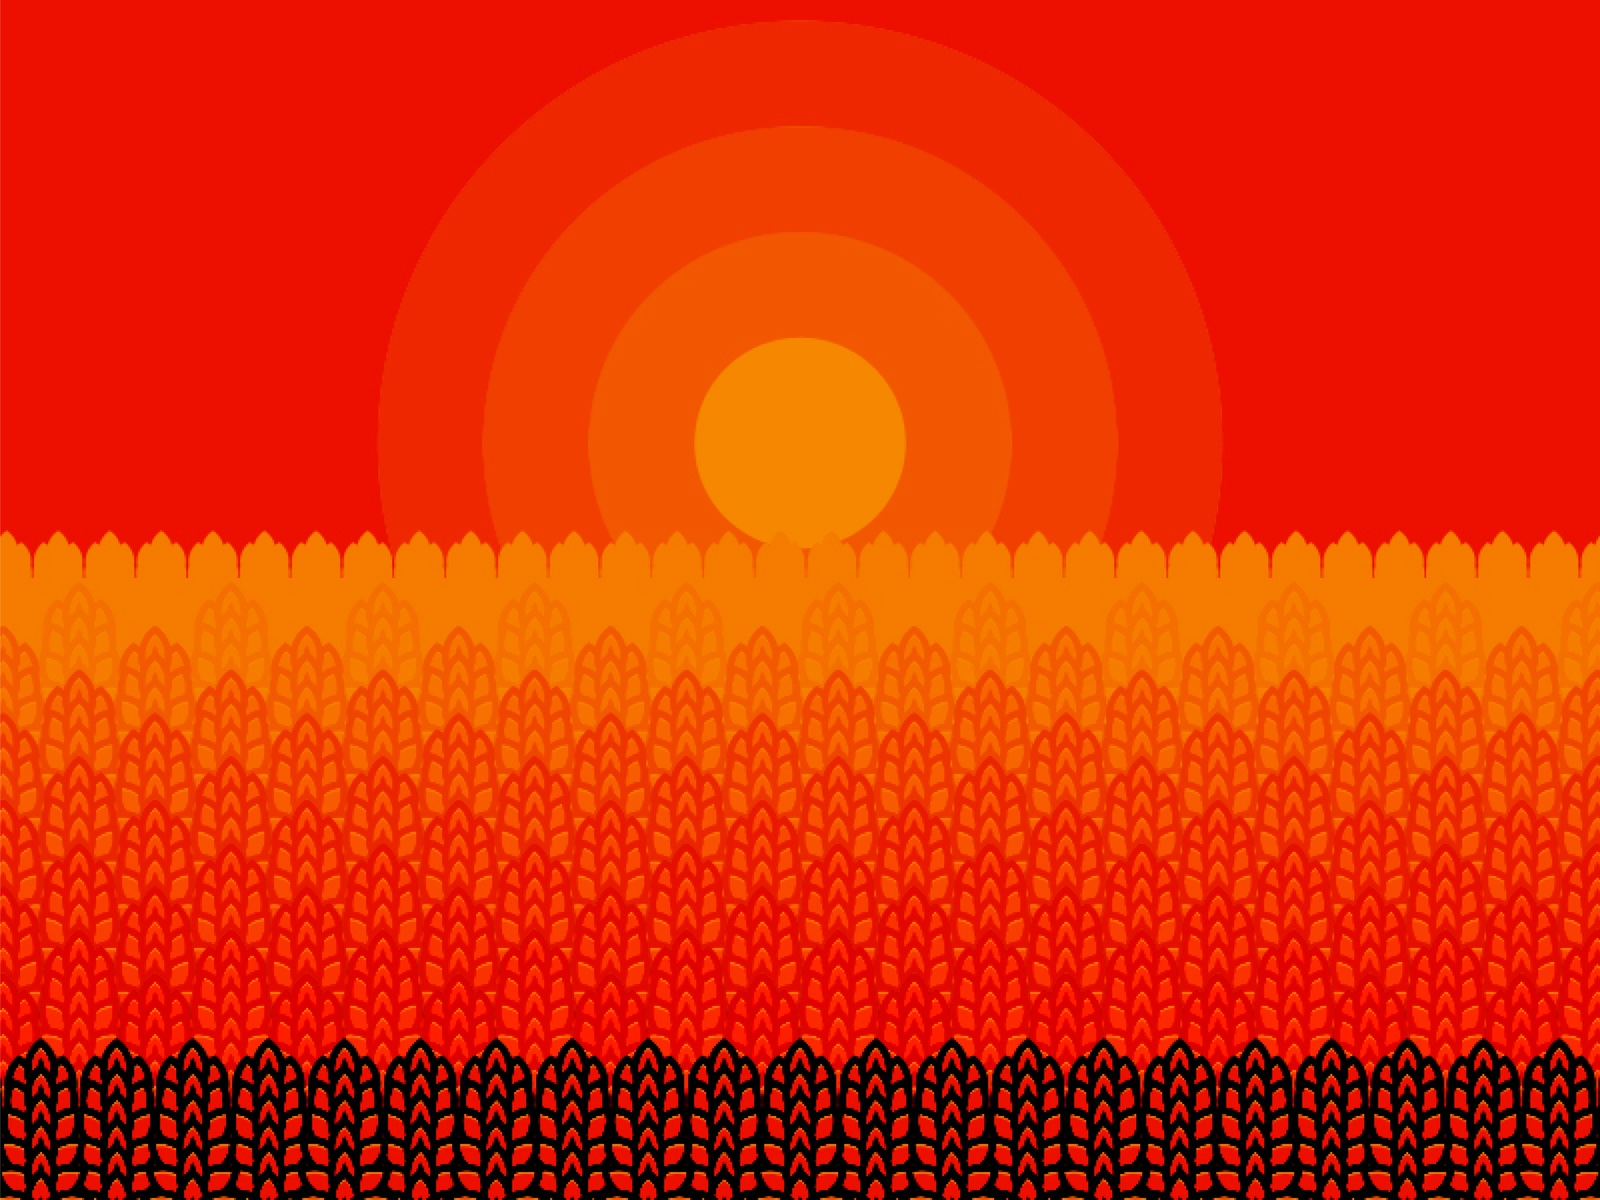 Amber Waves Of Grain By Jesse Mcnelley On Dribbble